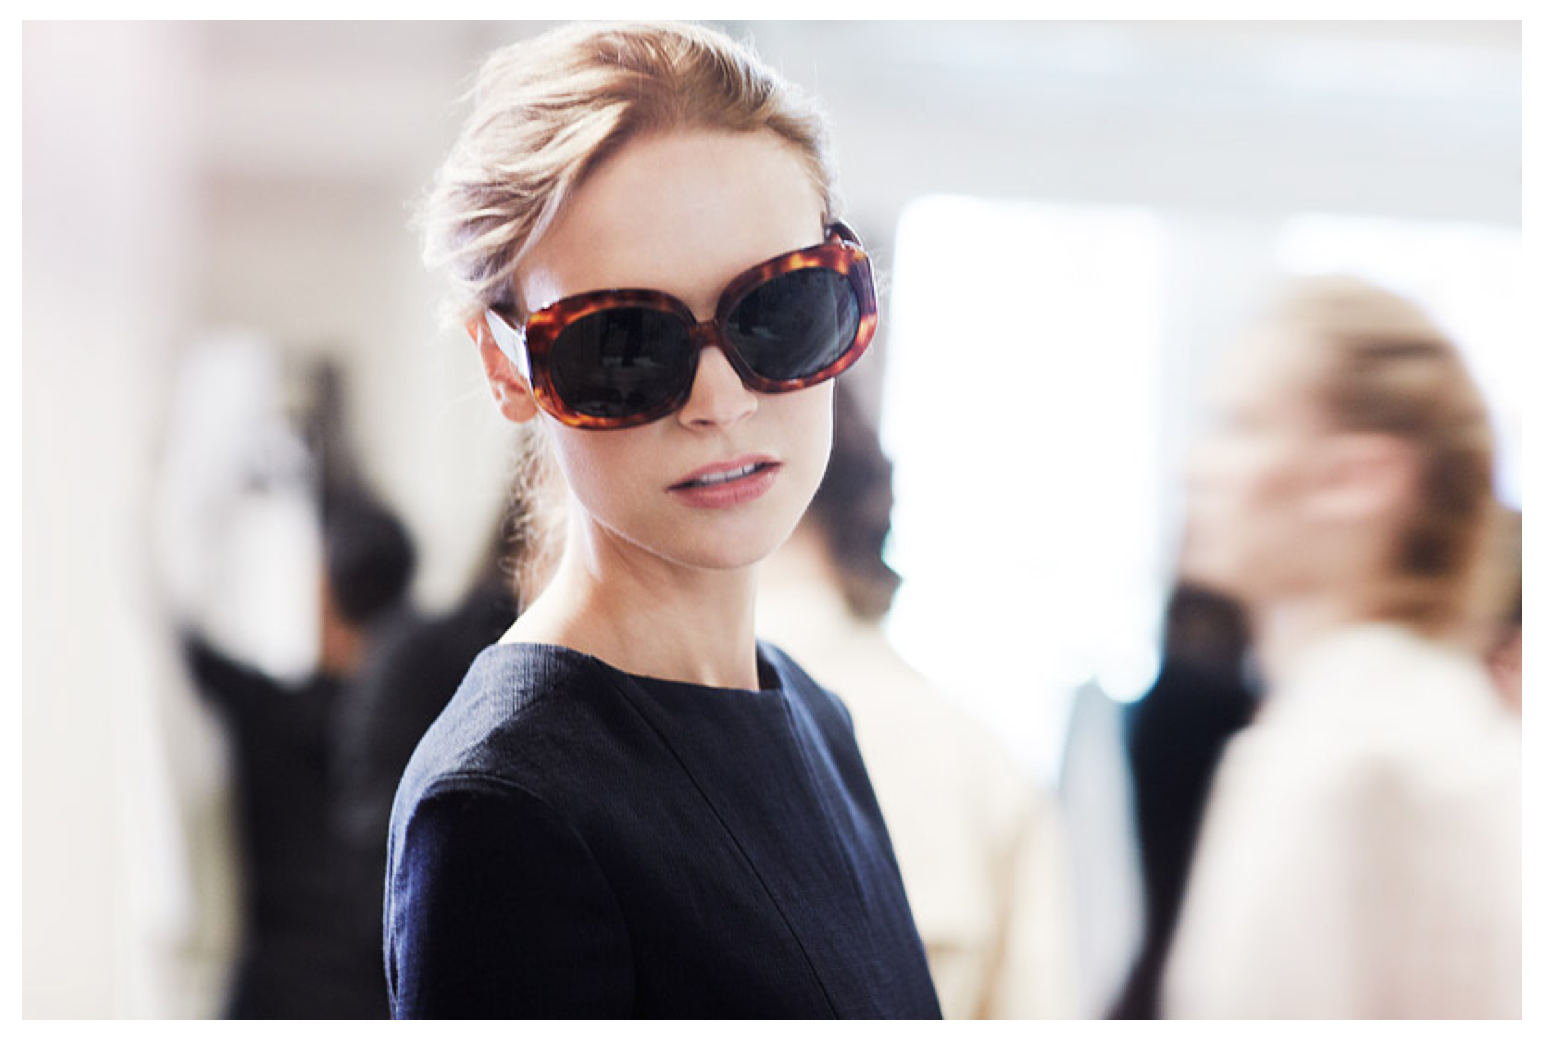 The Row Spring 2013 sunglasses